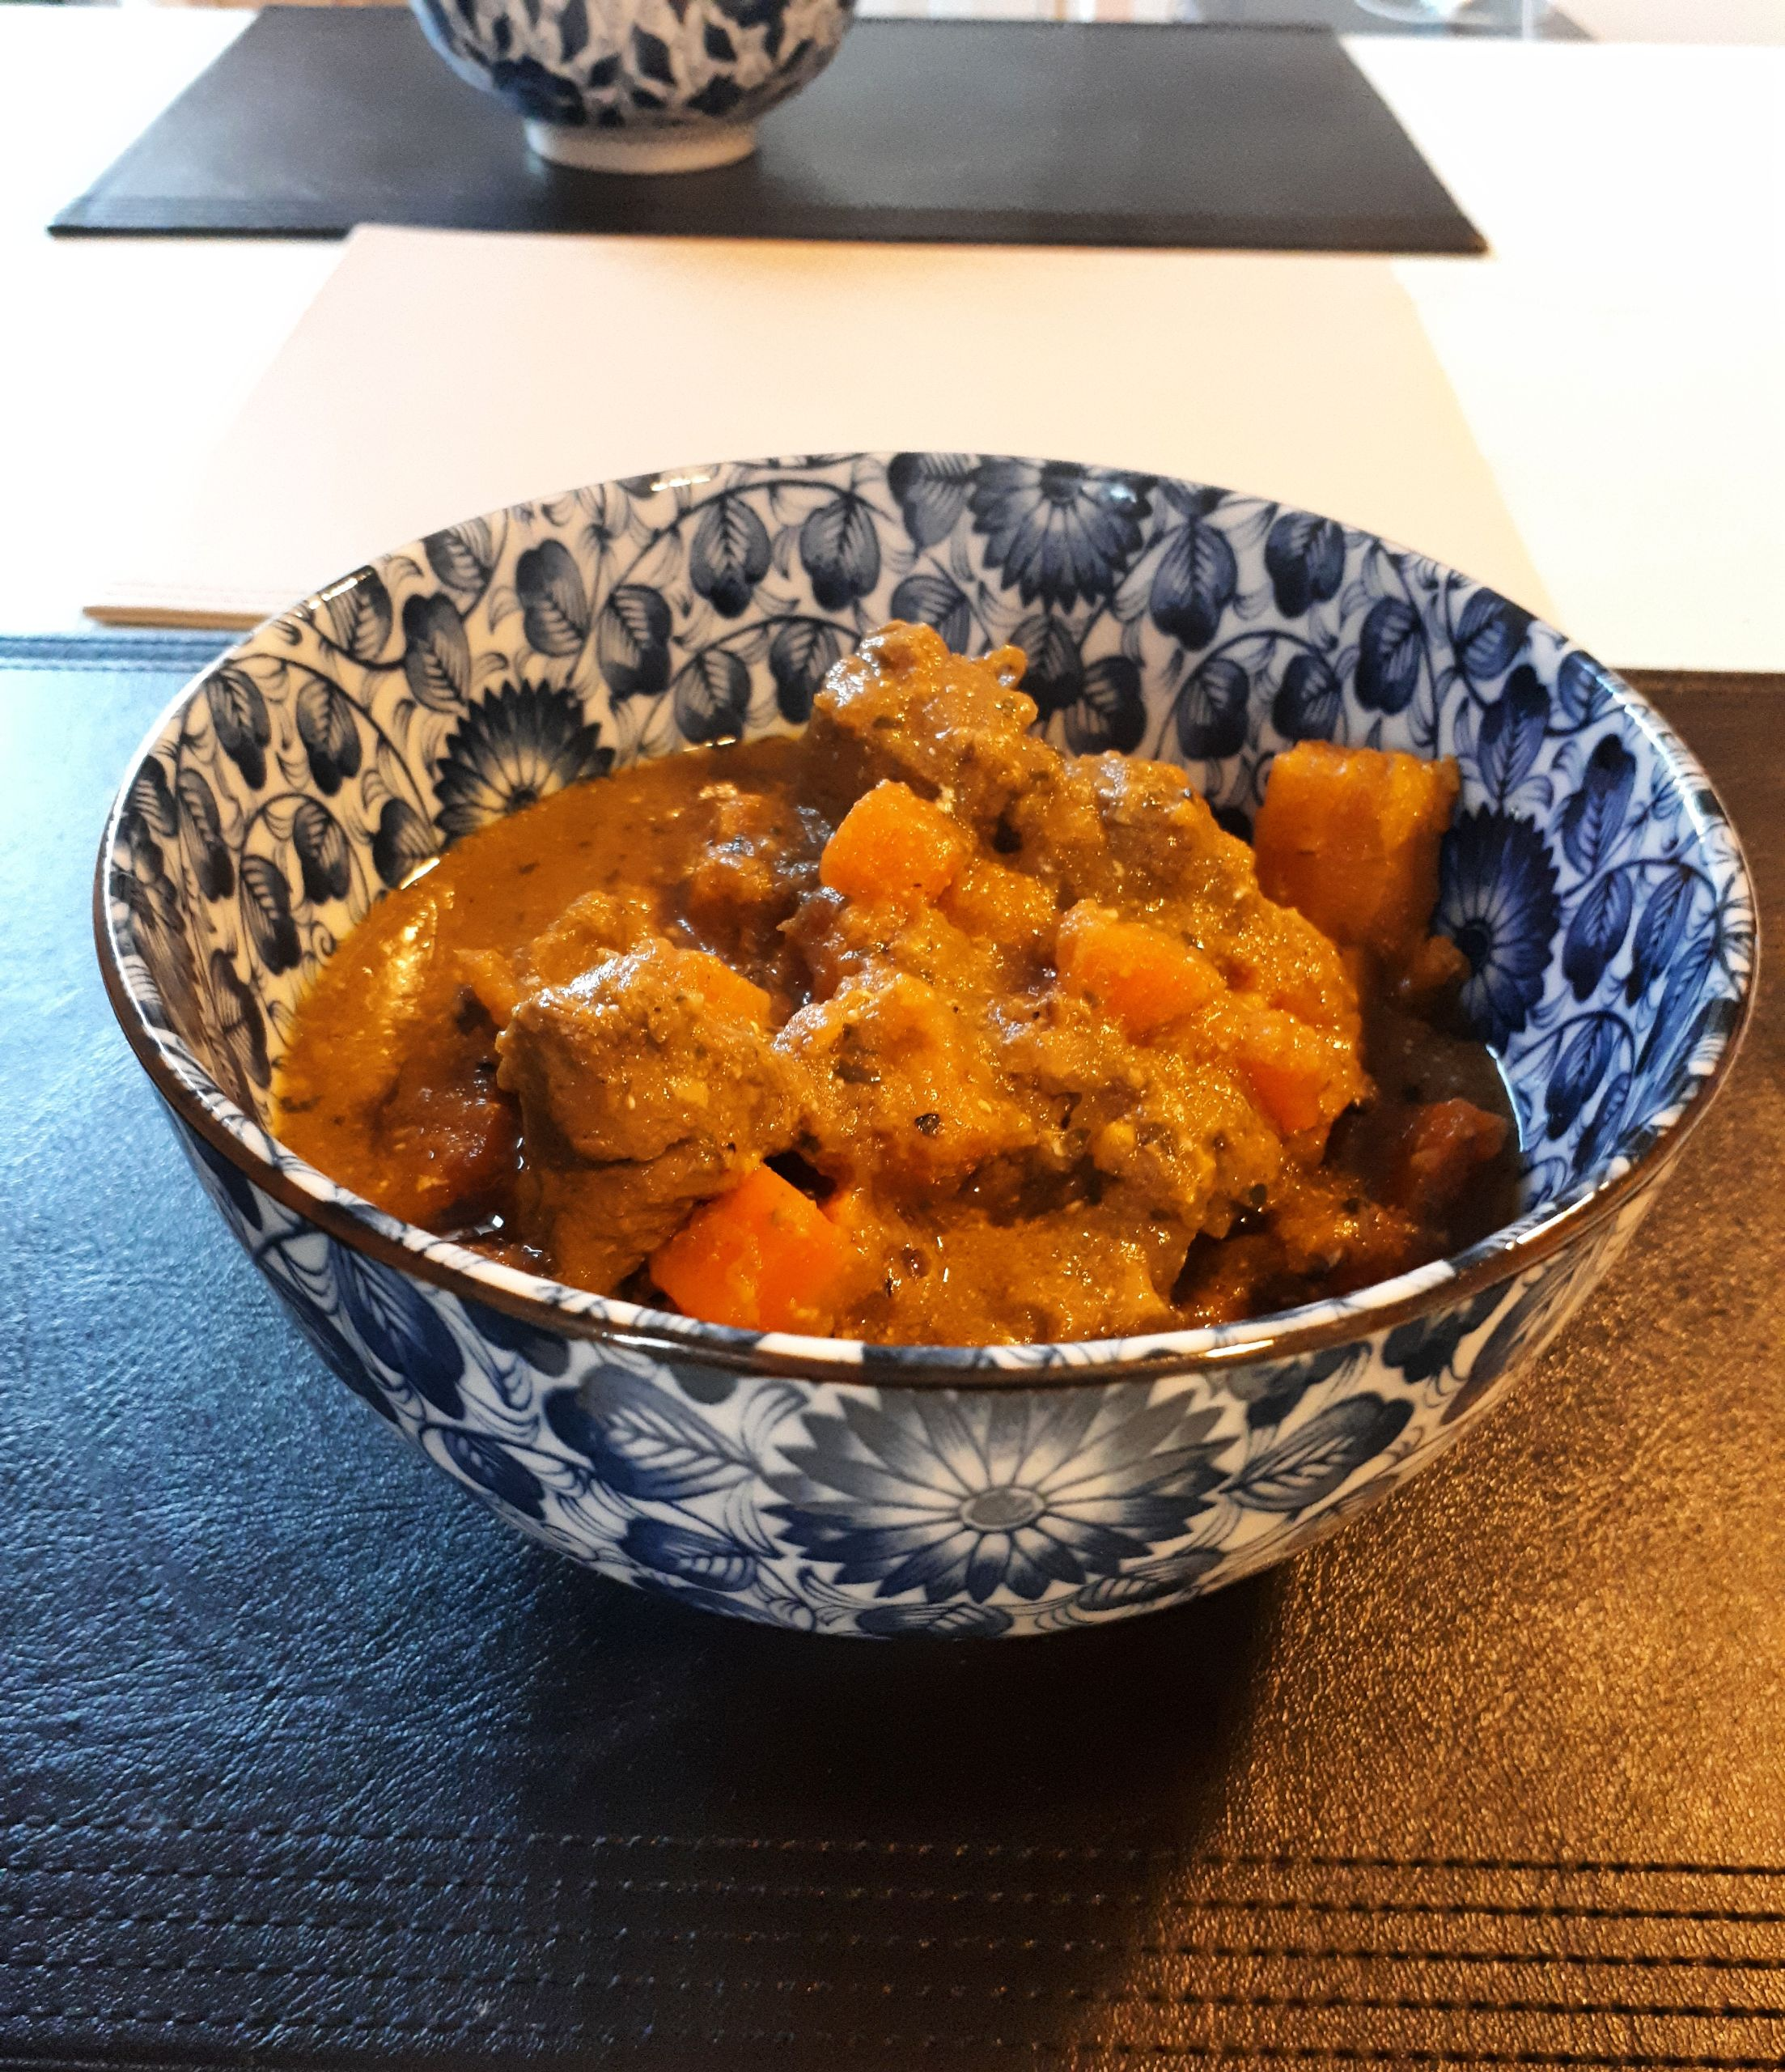 Tasty lamb curry